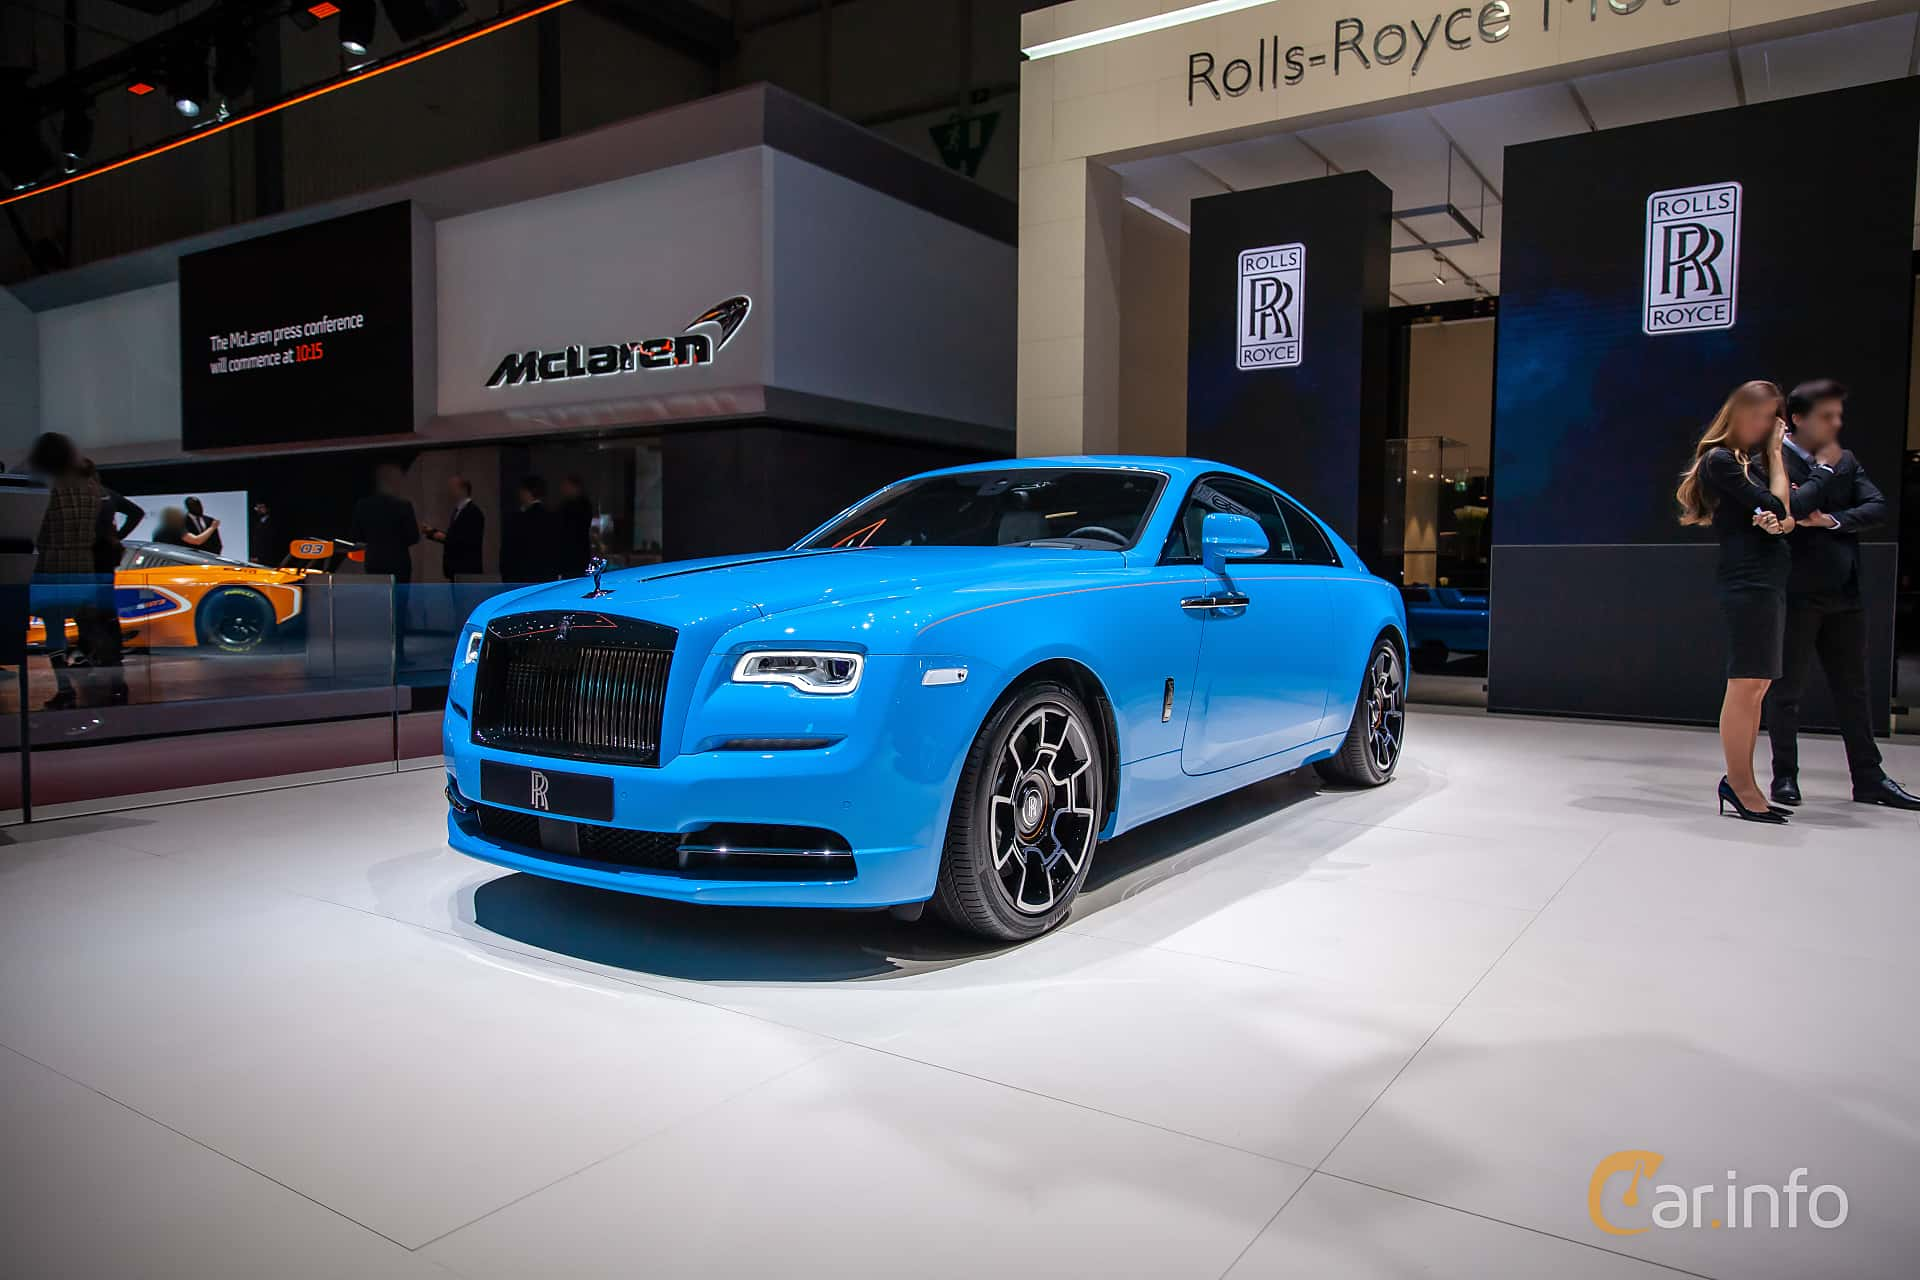 Rolls-Royce Wraith Coupé 6.6 V12 Automatic, 632hp, 2019 at Geneva Motor Show 2019